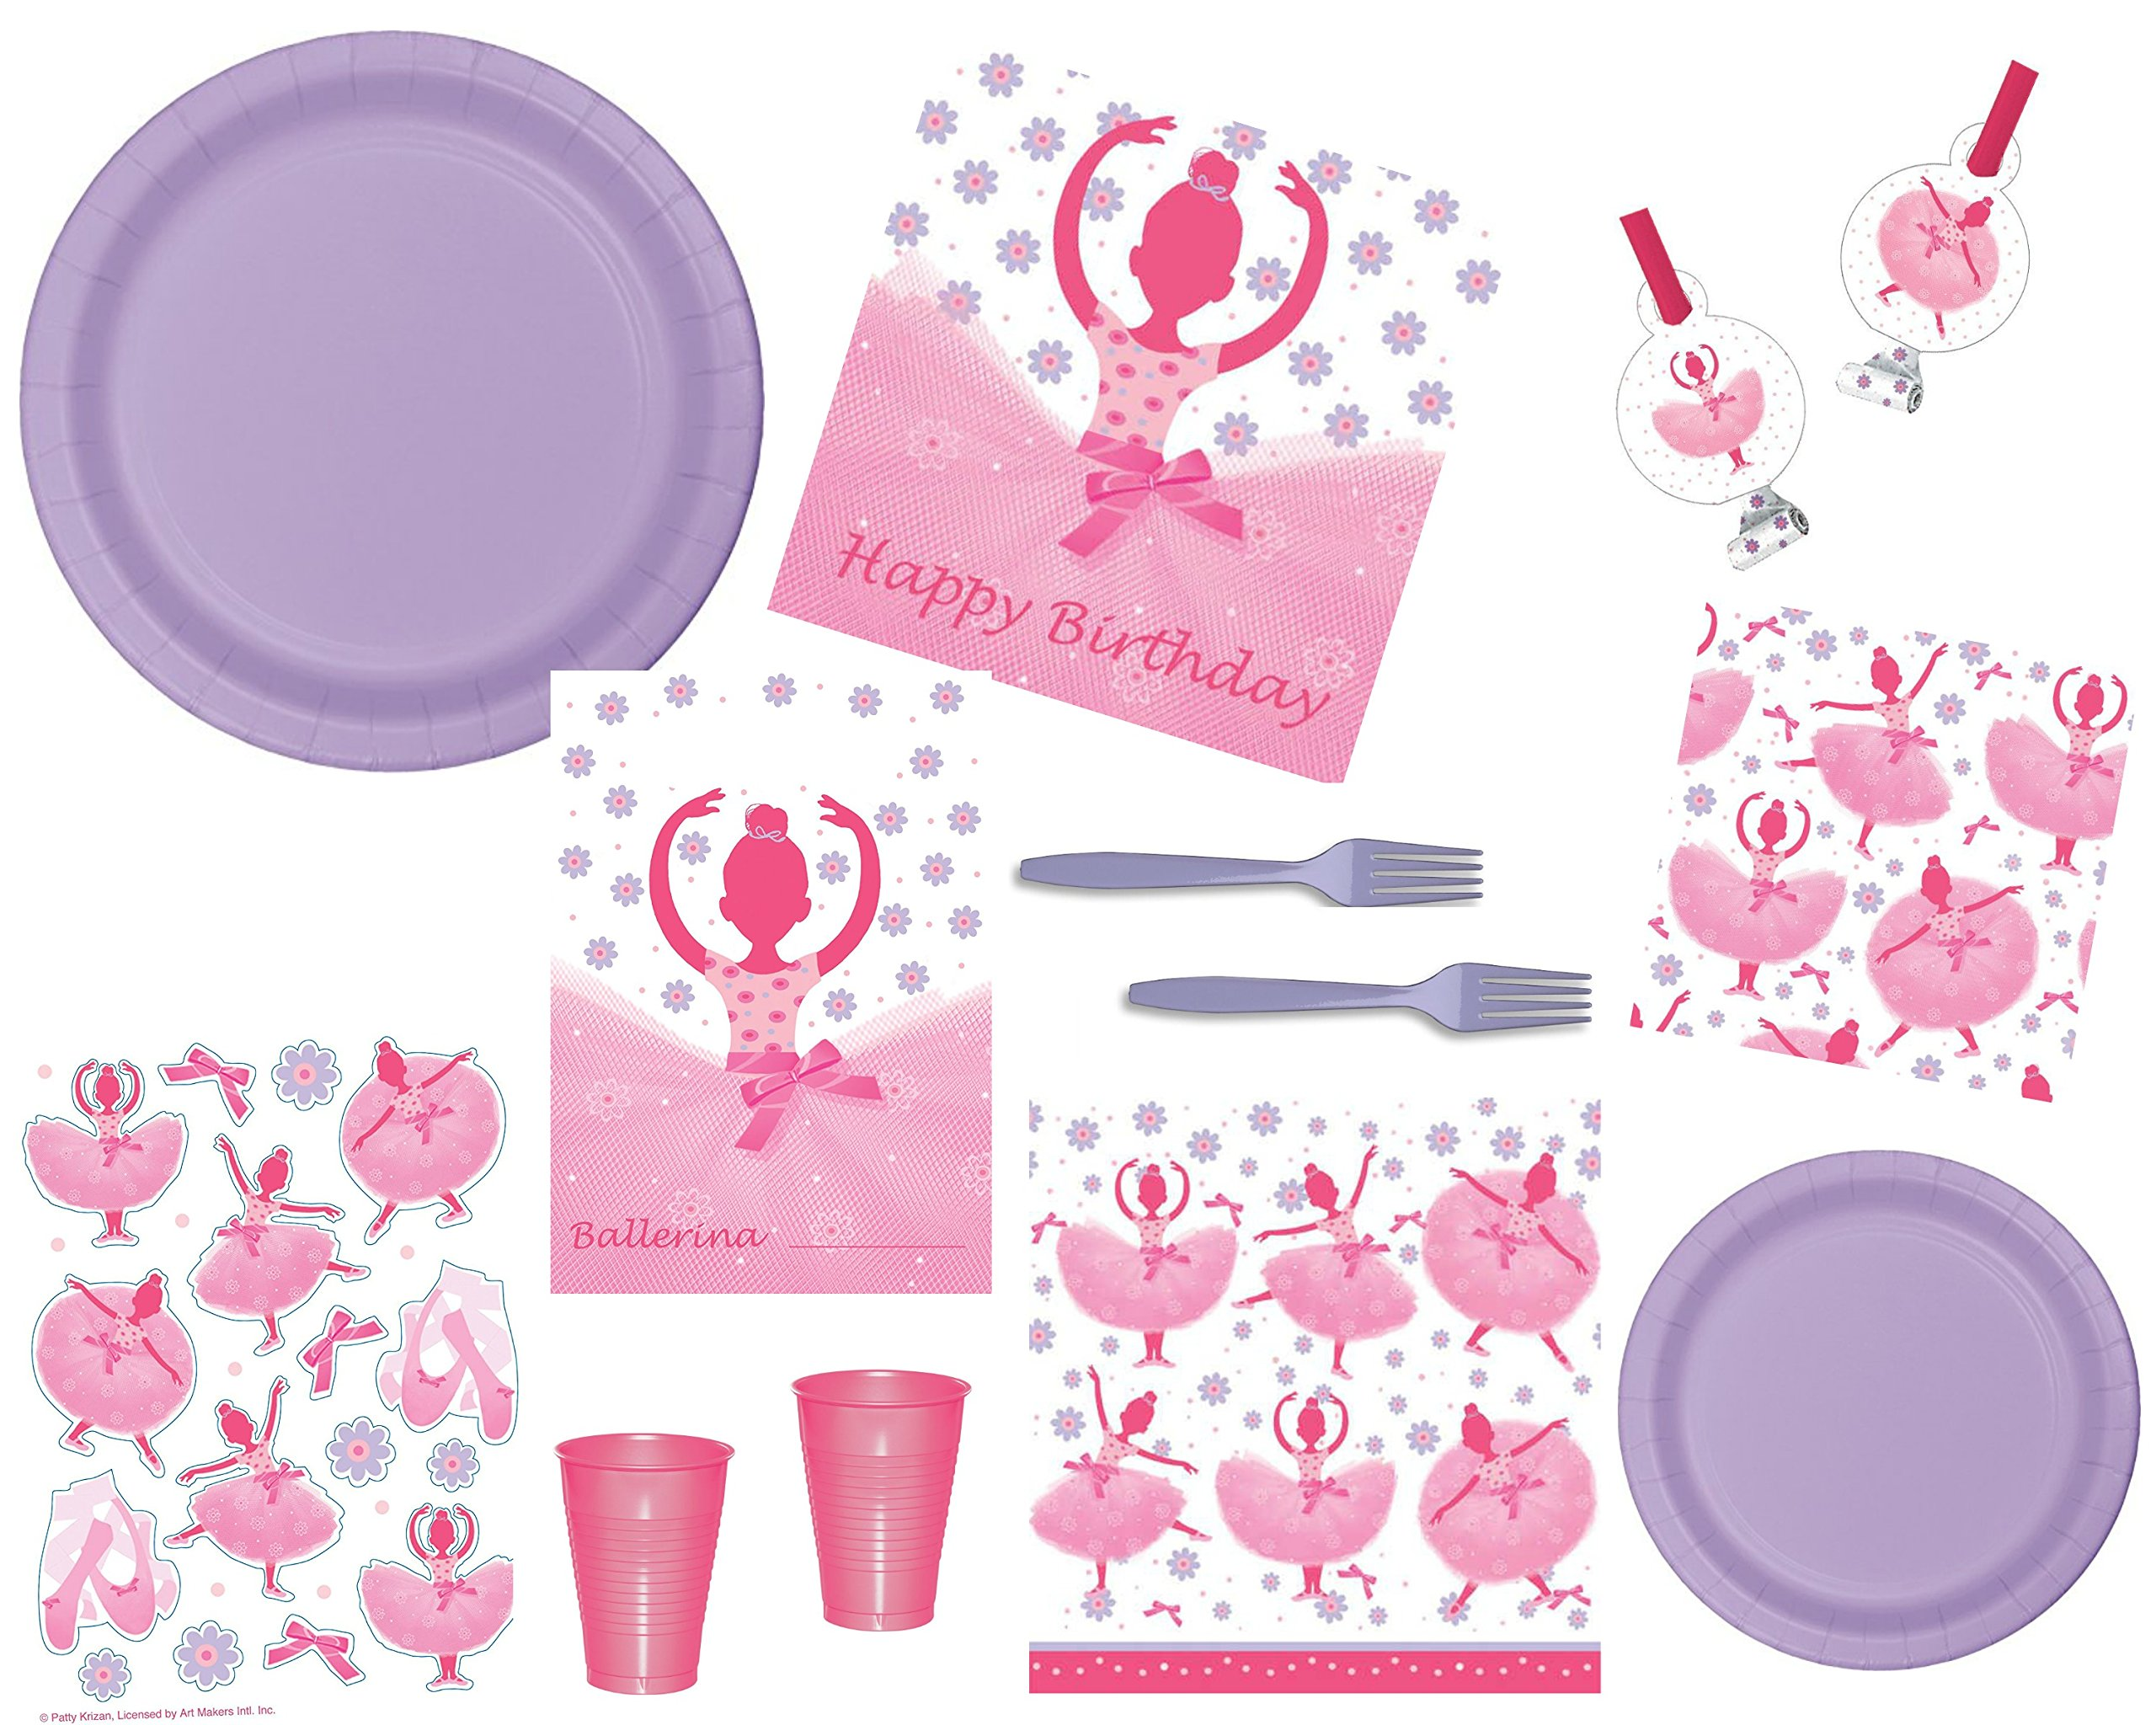 Ballet/Ballerina Deluxe Party Supply Bundle Tutu Much Fun For 16 Guests - Includes Plates, Napkins, Forks, Cups, Tablecover, Treat Bags and Favors